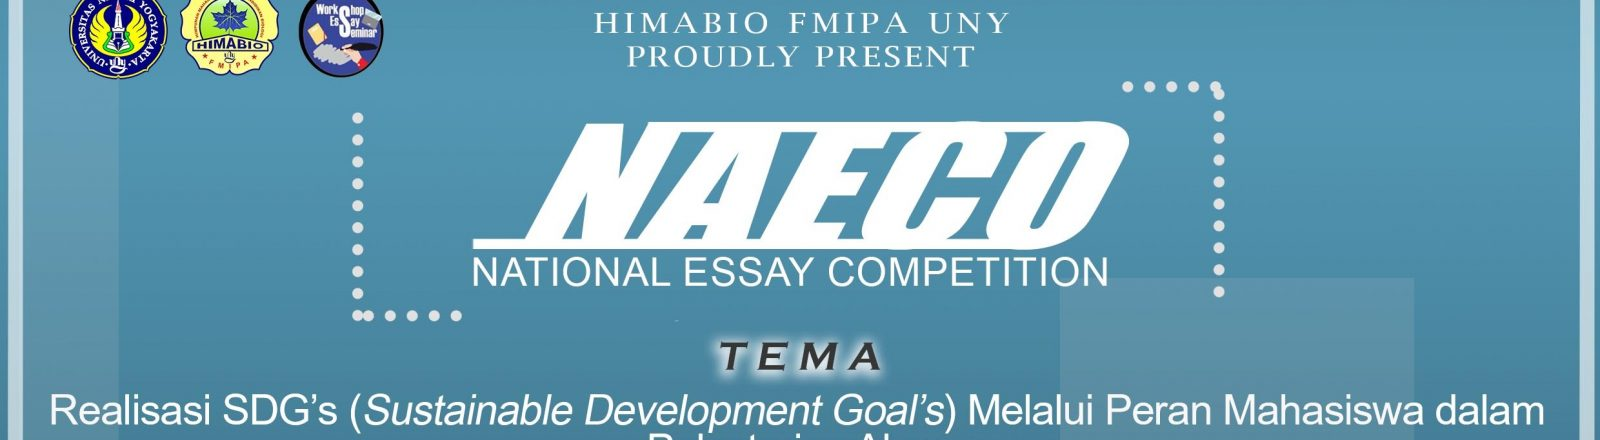 National Essay Competition (NAECO) 2018